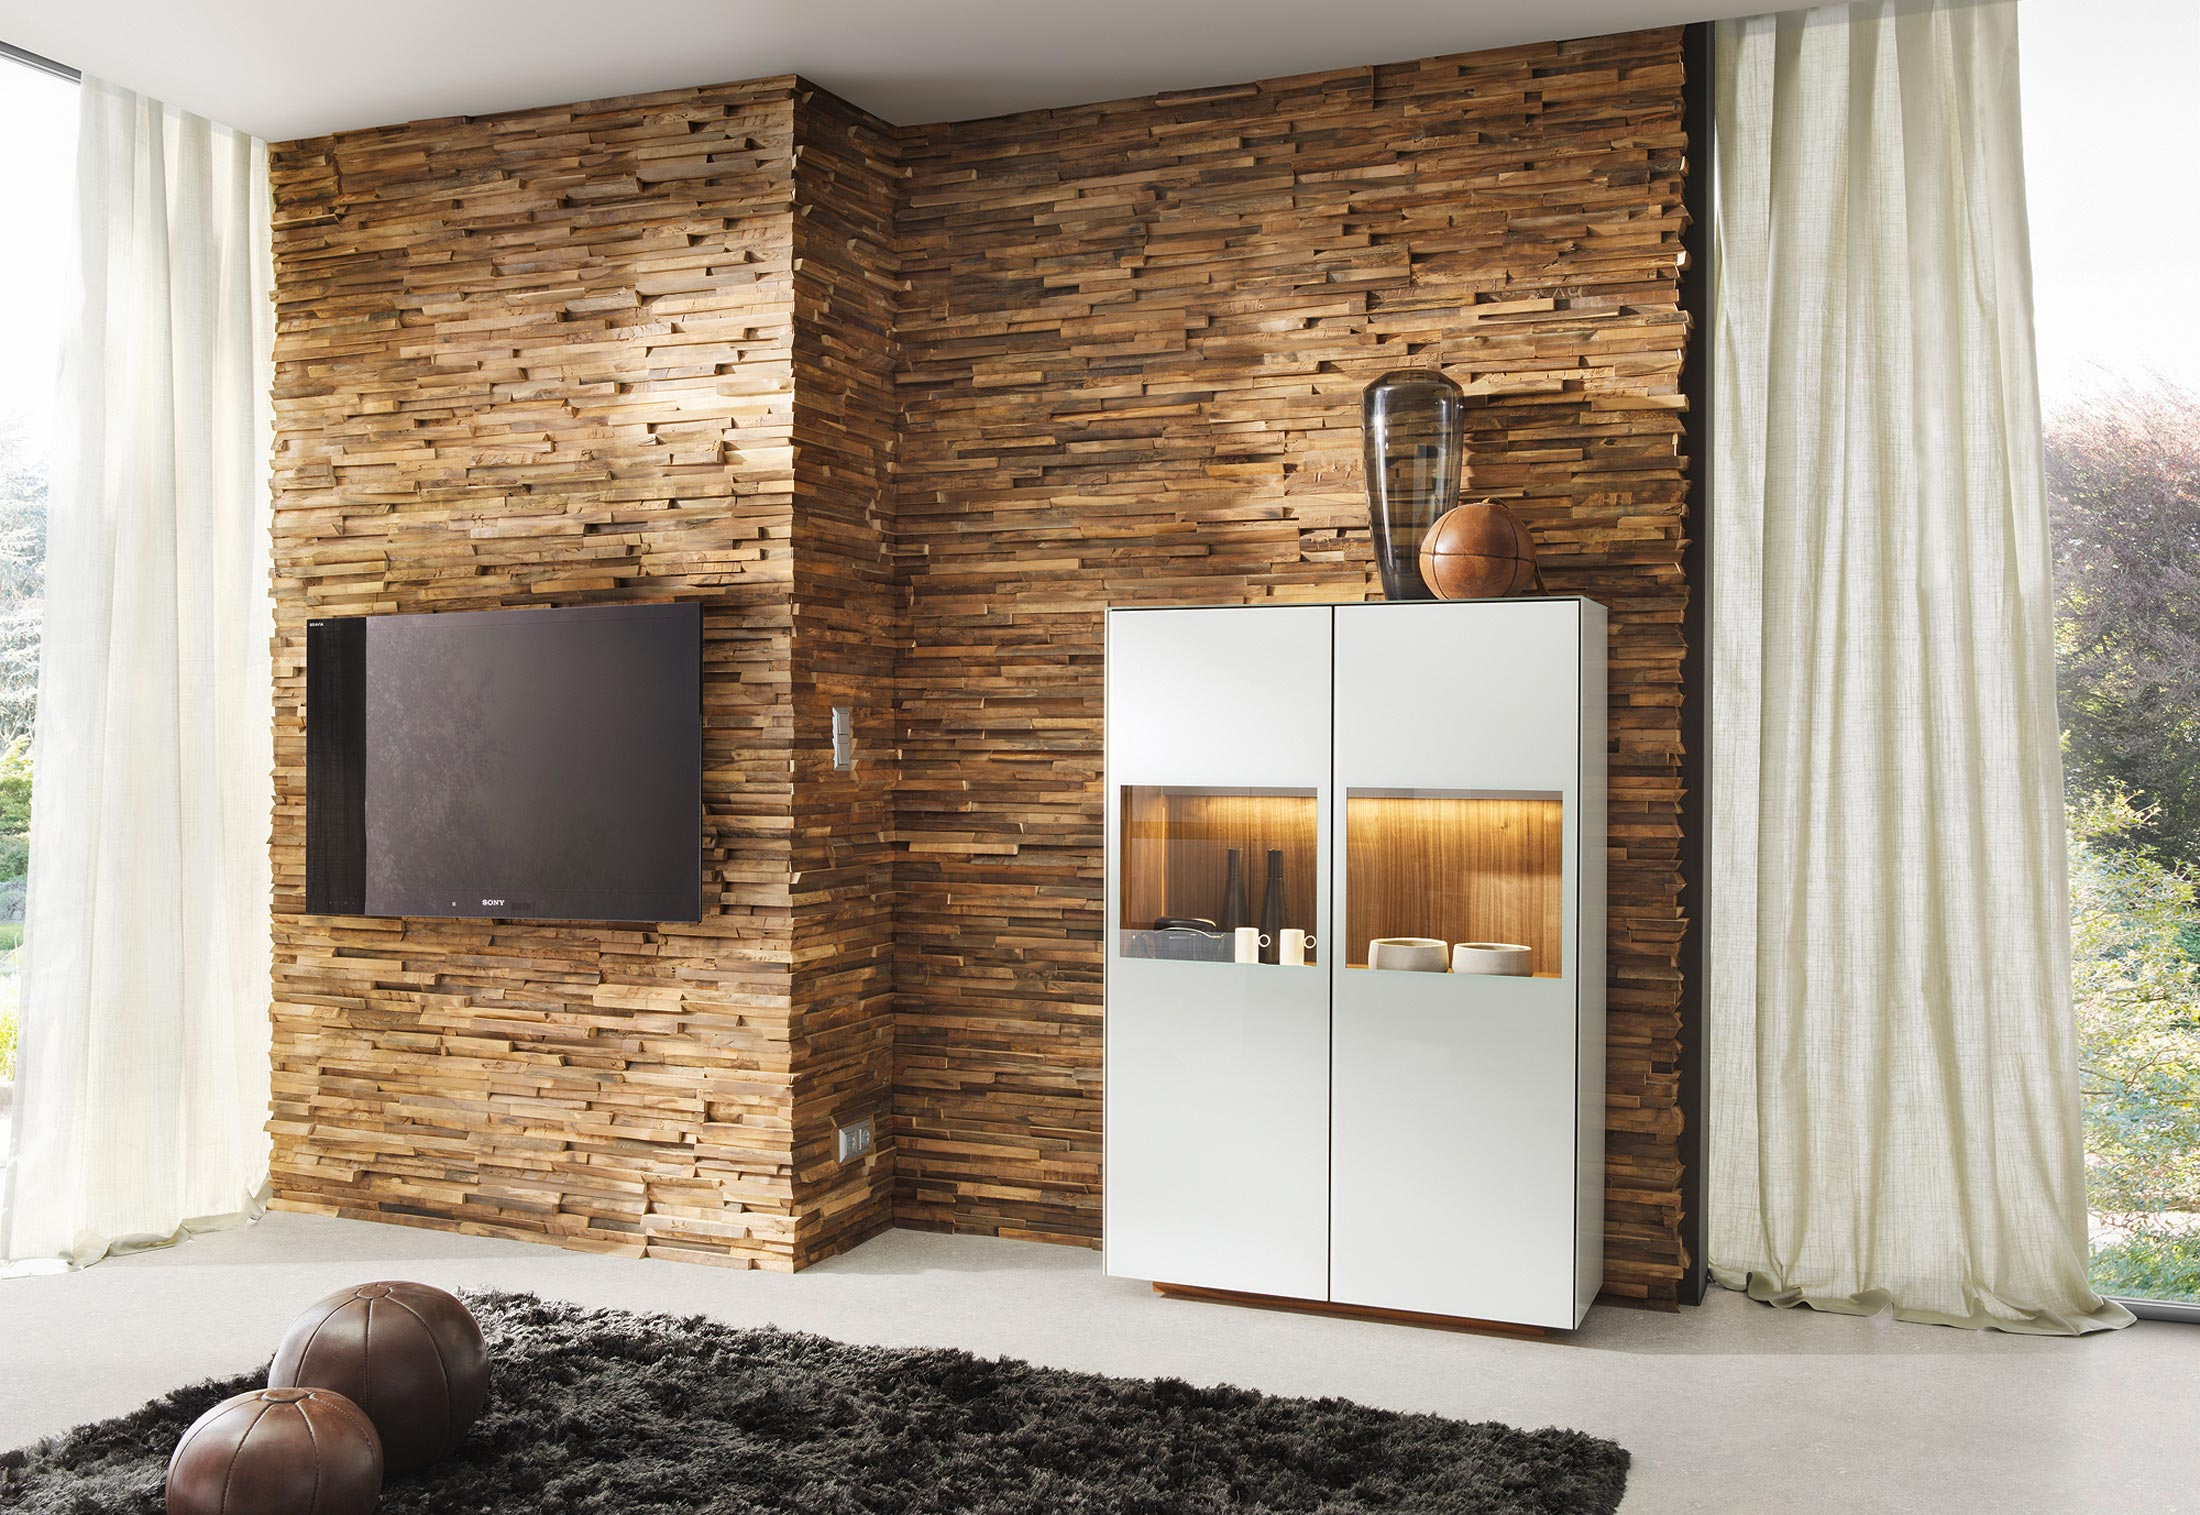 Waldkante Wall Covering; Waldkante Wall Covering ...